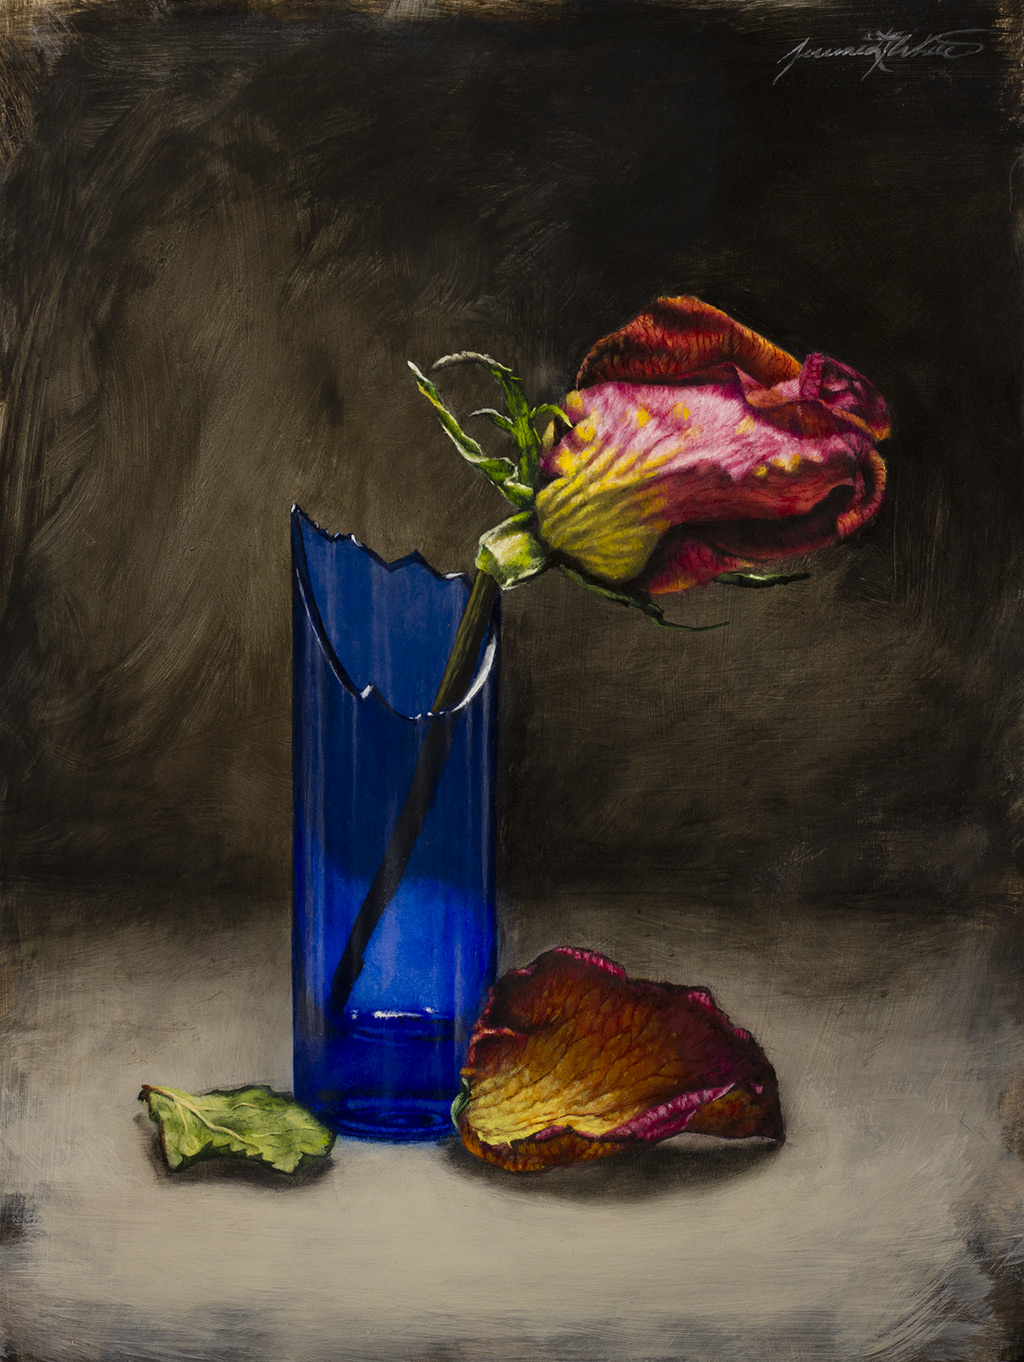 rose_in_transition-oil_painting_on_canvas-still_life-1024pxw.jpg